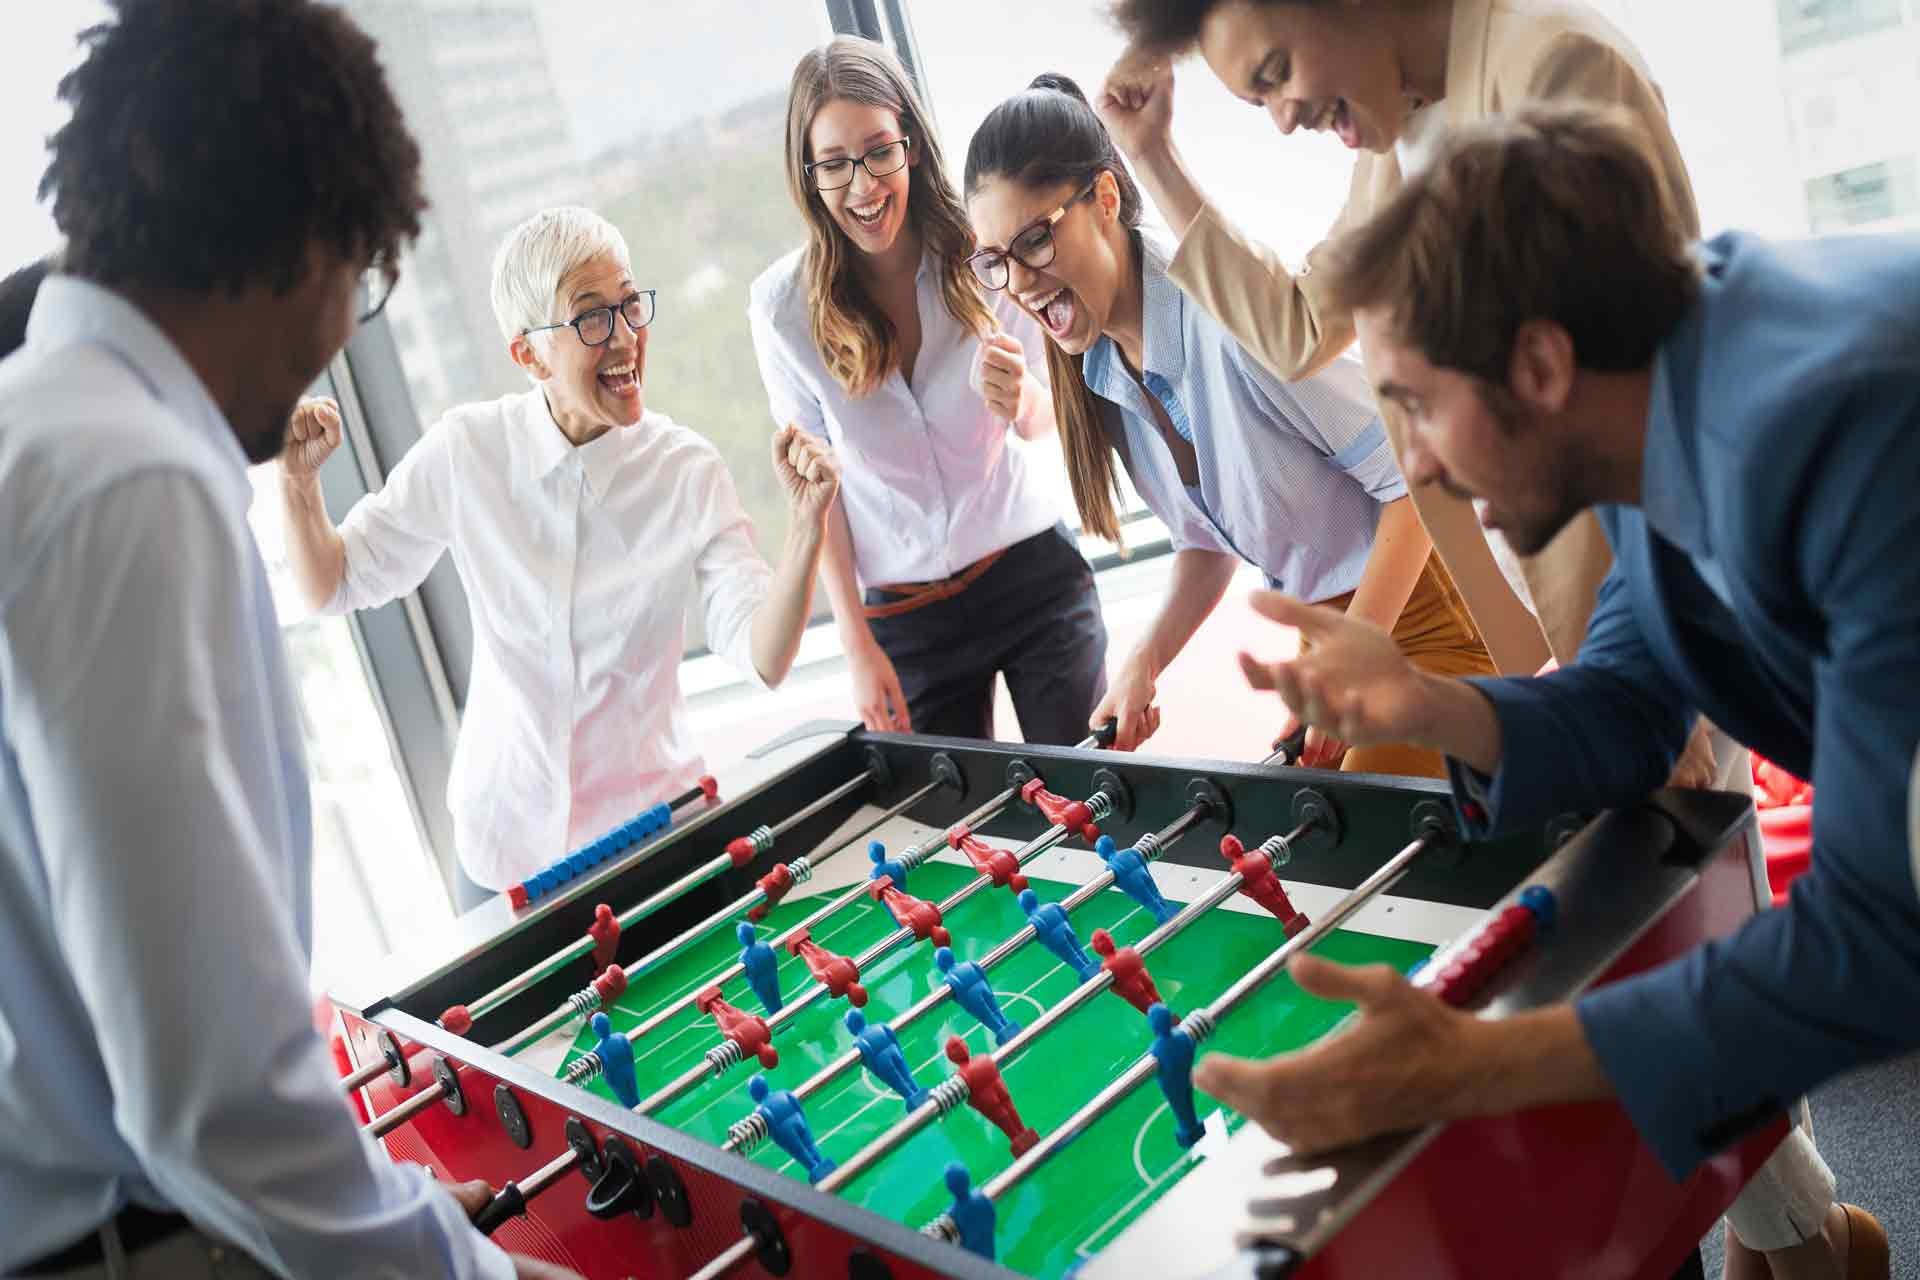 5 Fun Team Building Activities for Work